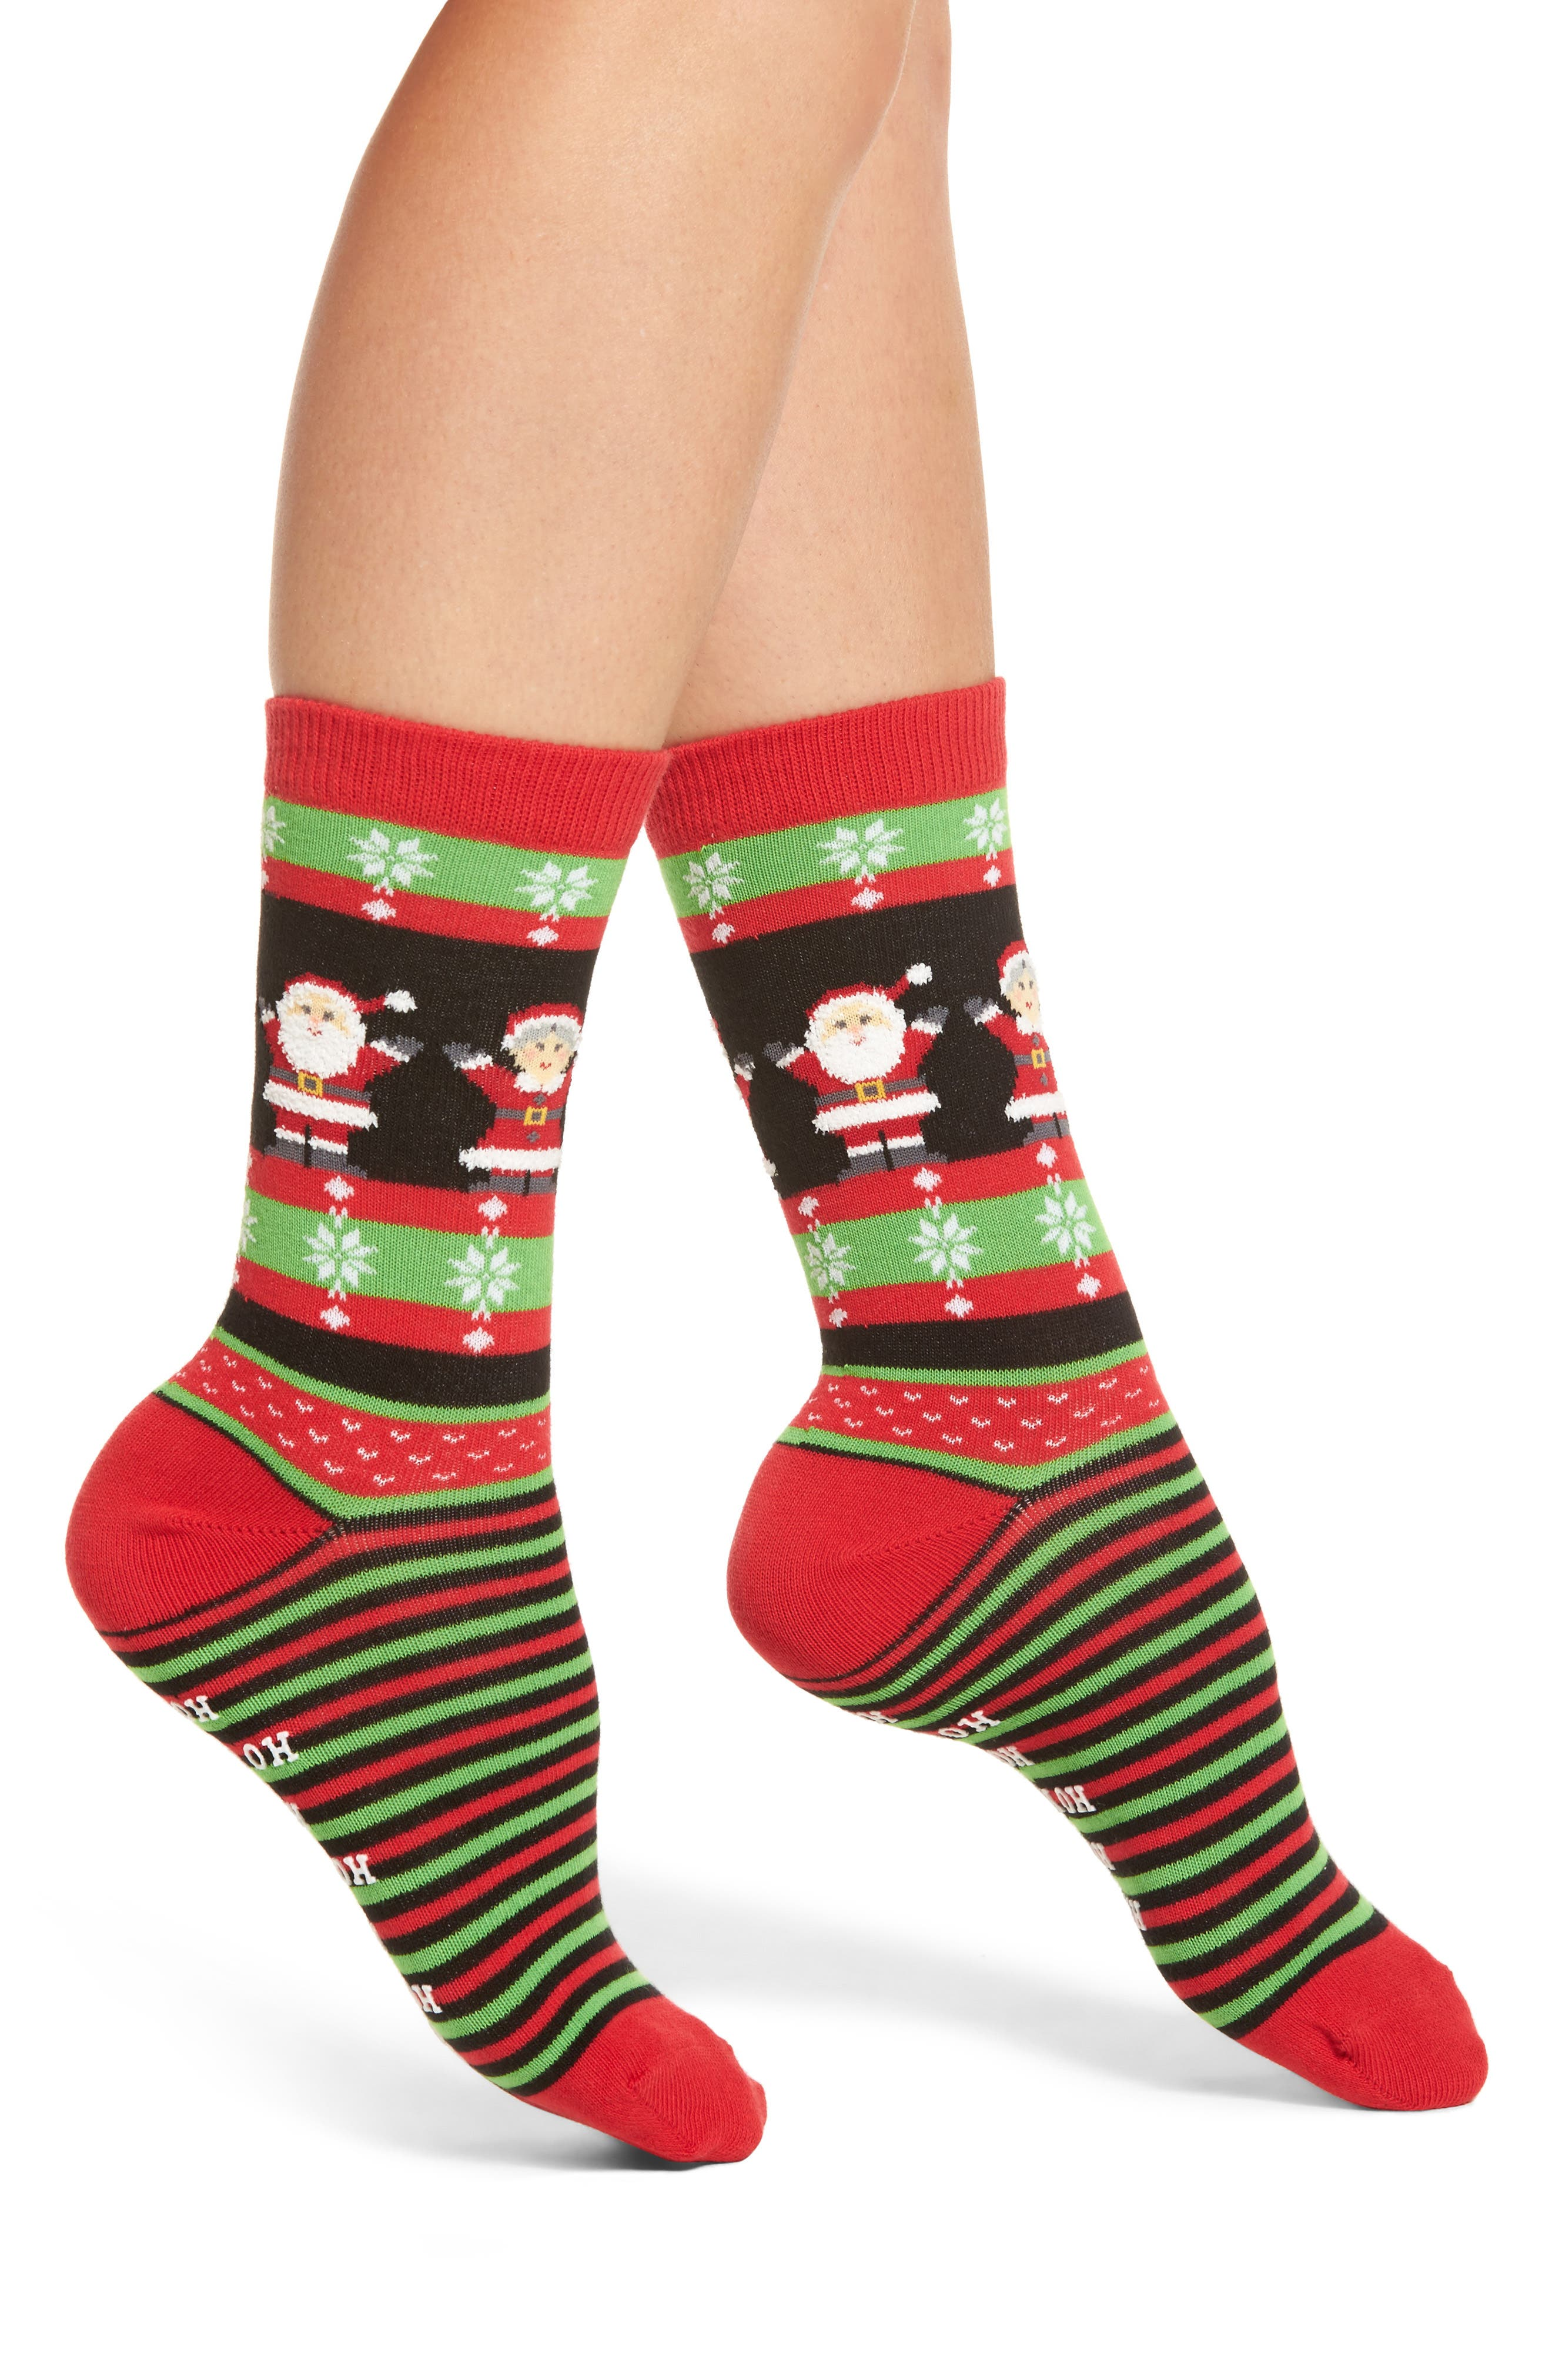 Hot Sox Mr. & Mrs. Claus Nonskid Socks (3 for $15)